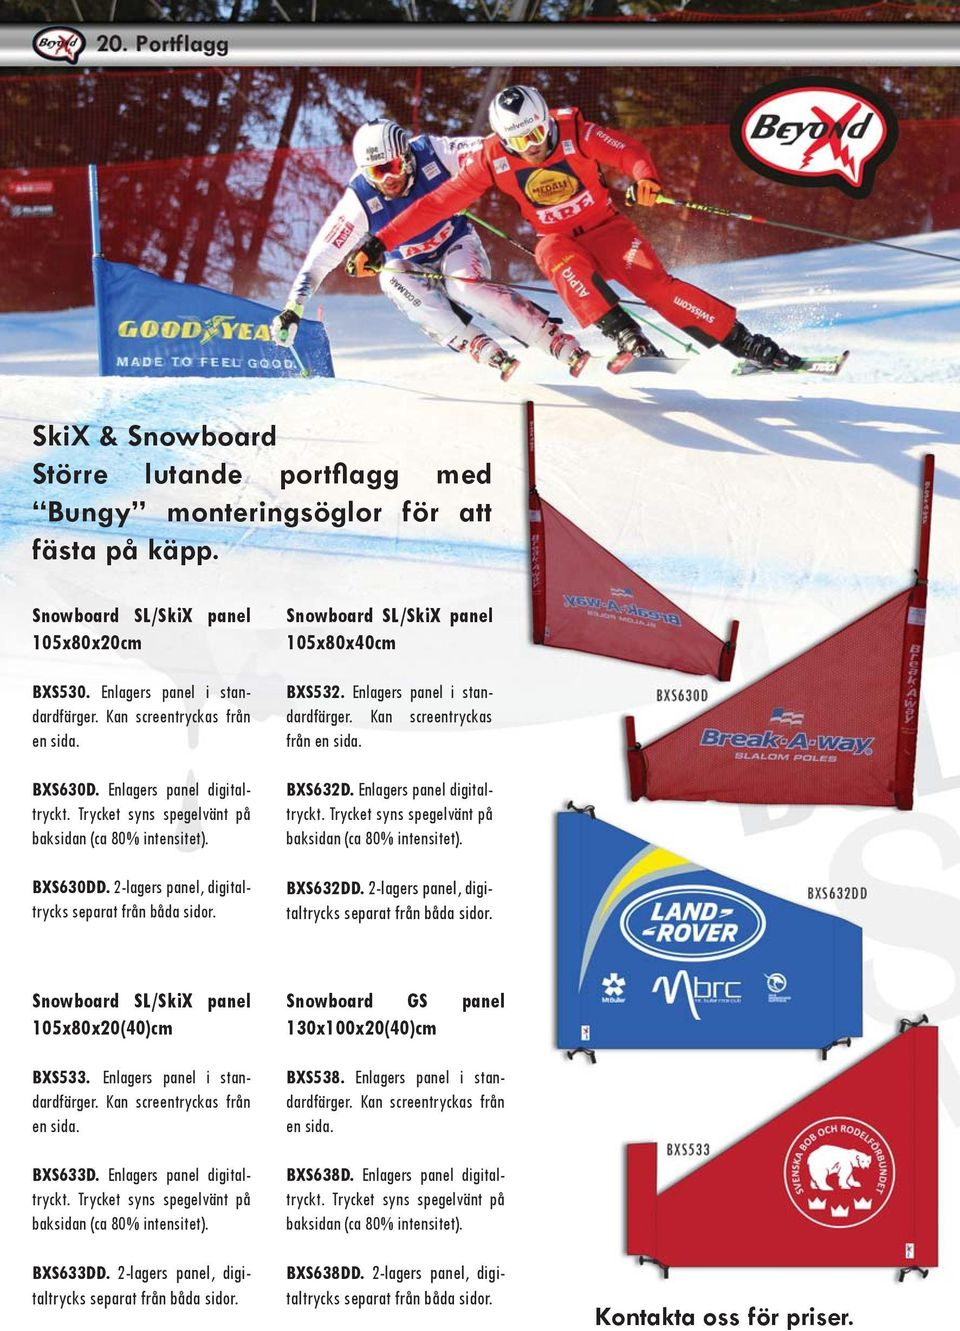 Snowboard SL/SkiX panel 105x80x40cm BXS532. Enlagers panel i standardfärger. Kan screentryckas från en sida. BXS632D. Enlagers panel digitaltryckt.